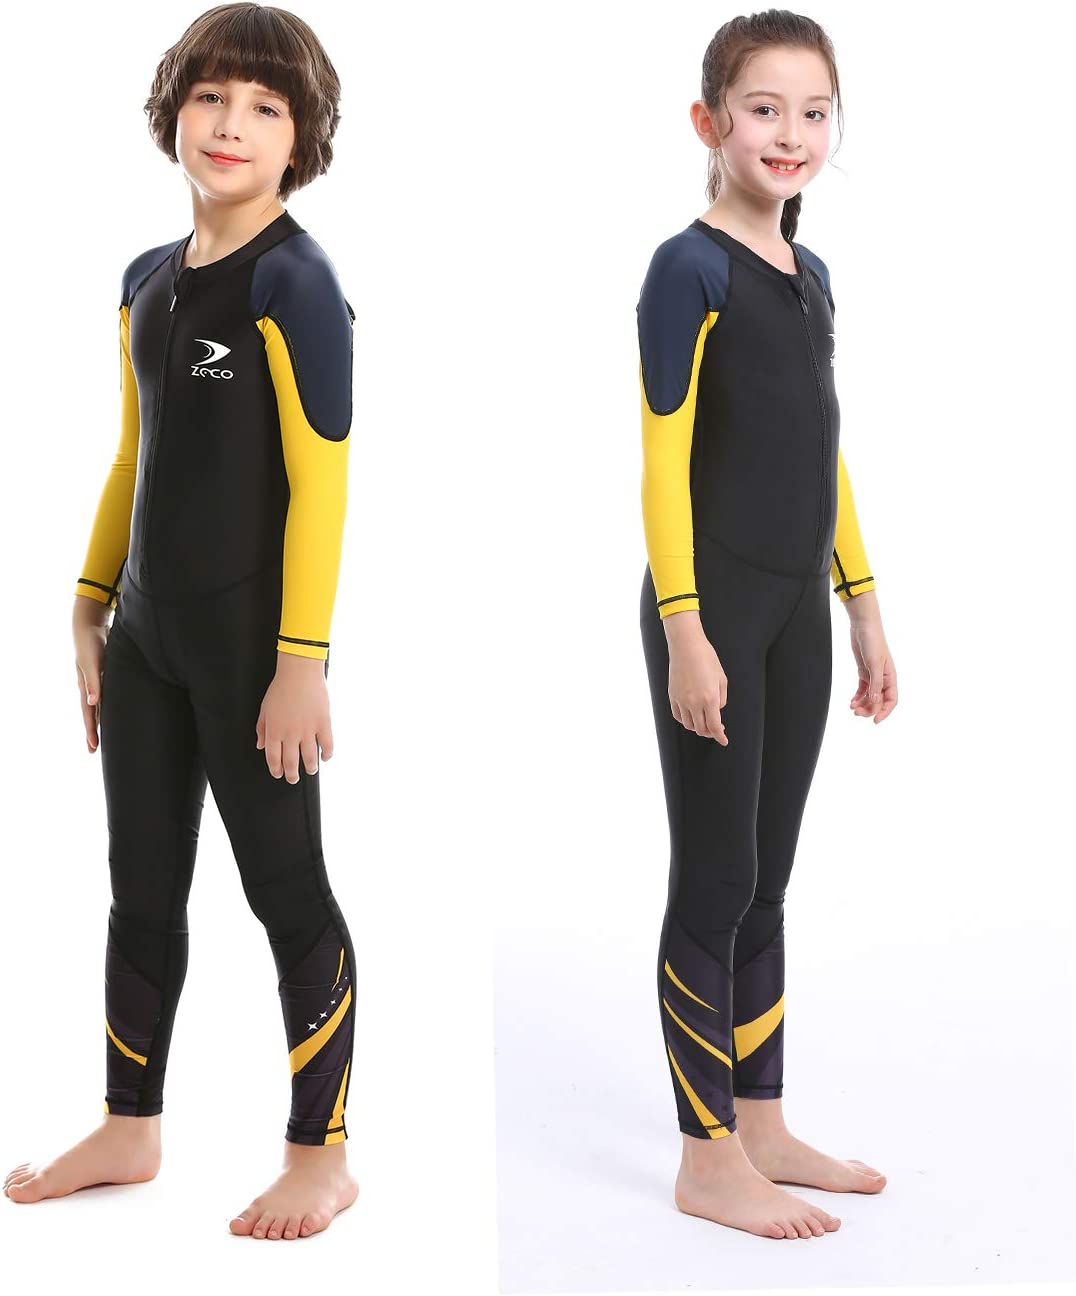 ZCCO Kids Swimsuit Girls and Boys Long Sleeve UV Sun Protection Full Body Rash Guard for Swimming Scuba Diving Snorkeling Pool Multi Water Sports One Piece Dive Skin Wet Suit